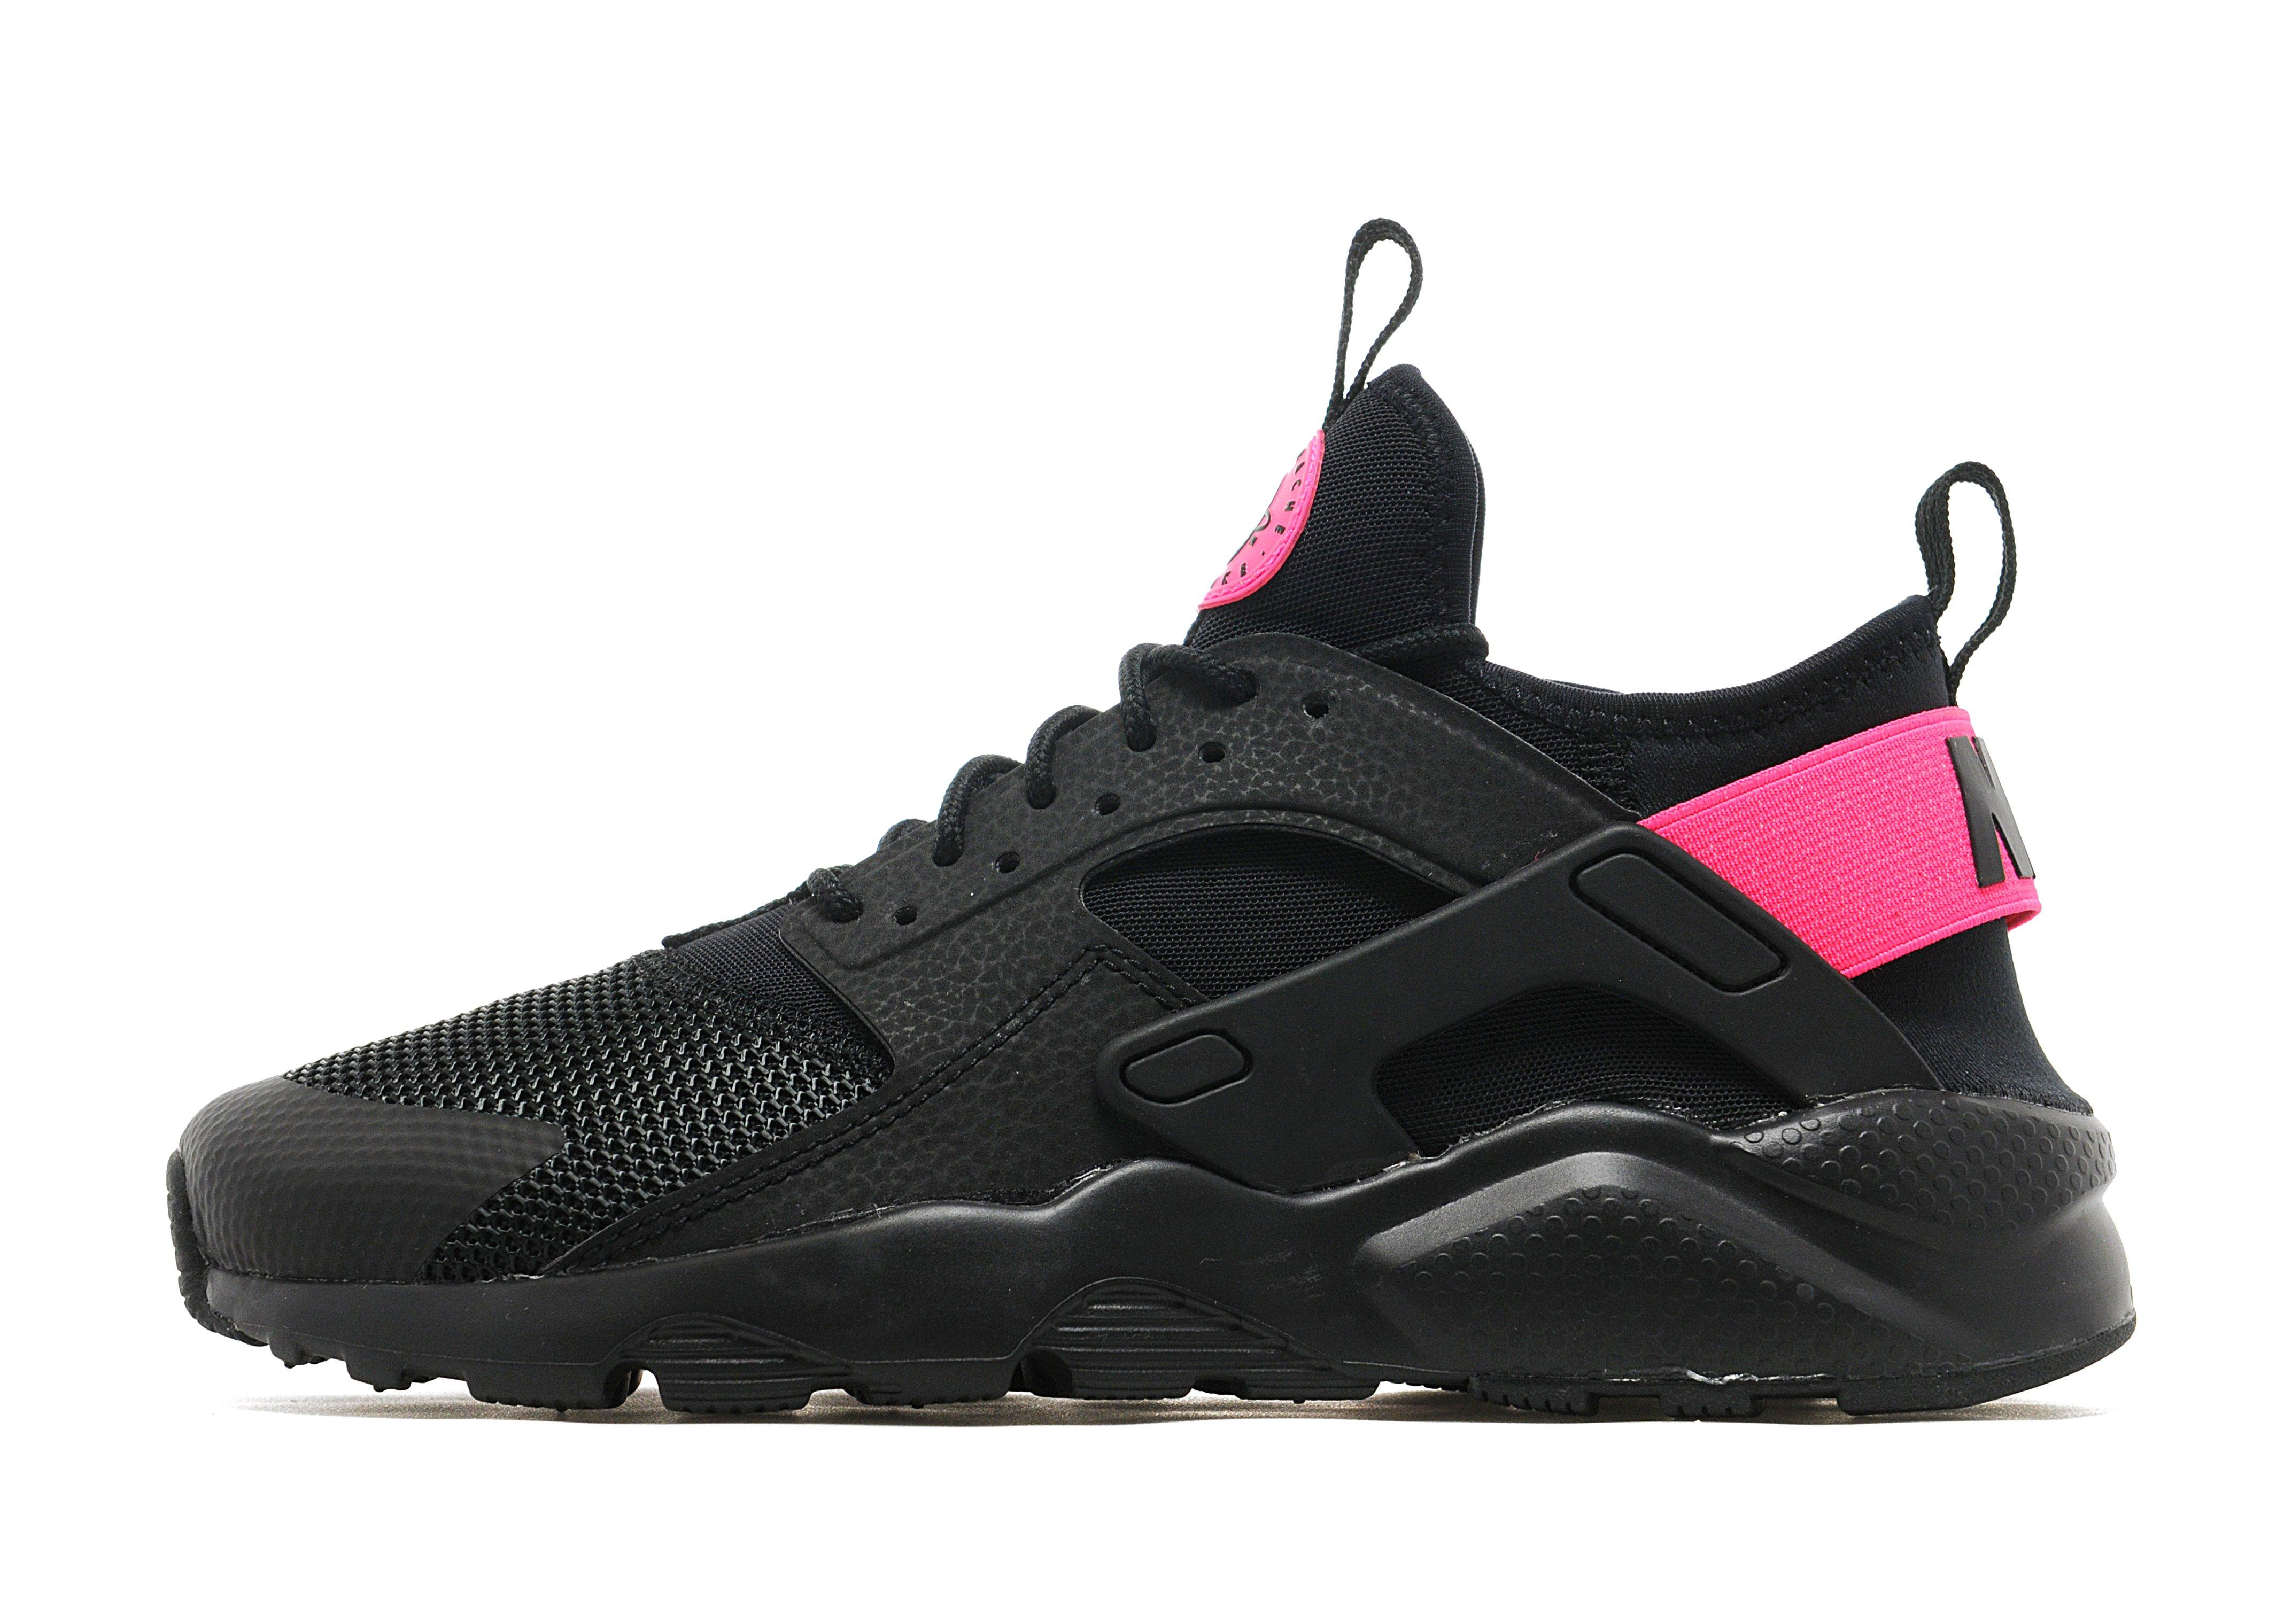 finest selection d88e5 08563 Nike Huarache Ultra Breathe Junior Black And Pink kids ...